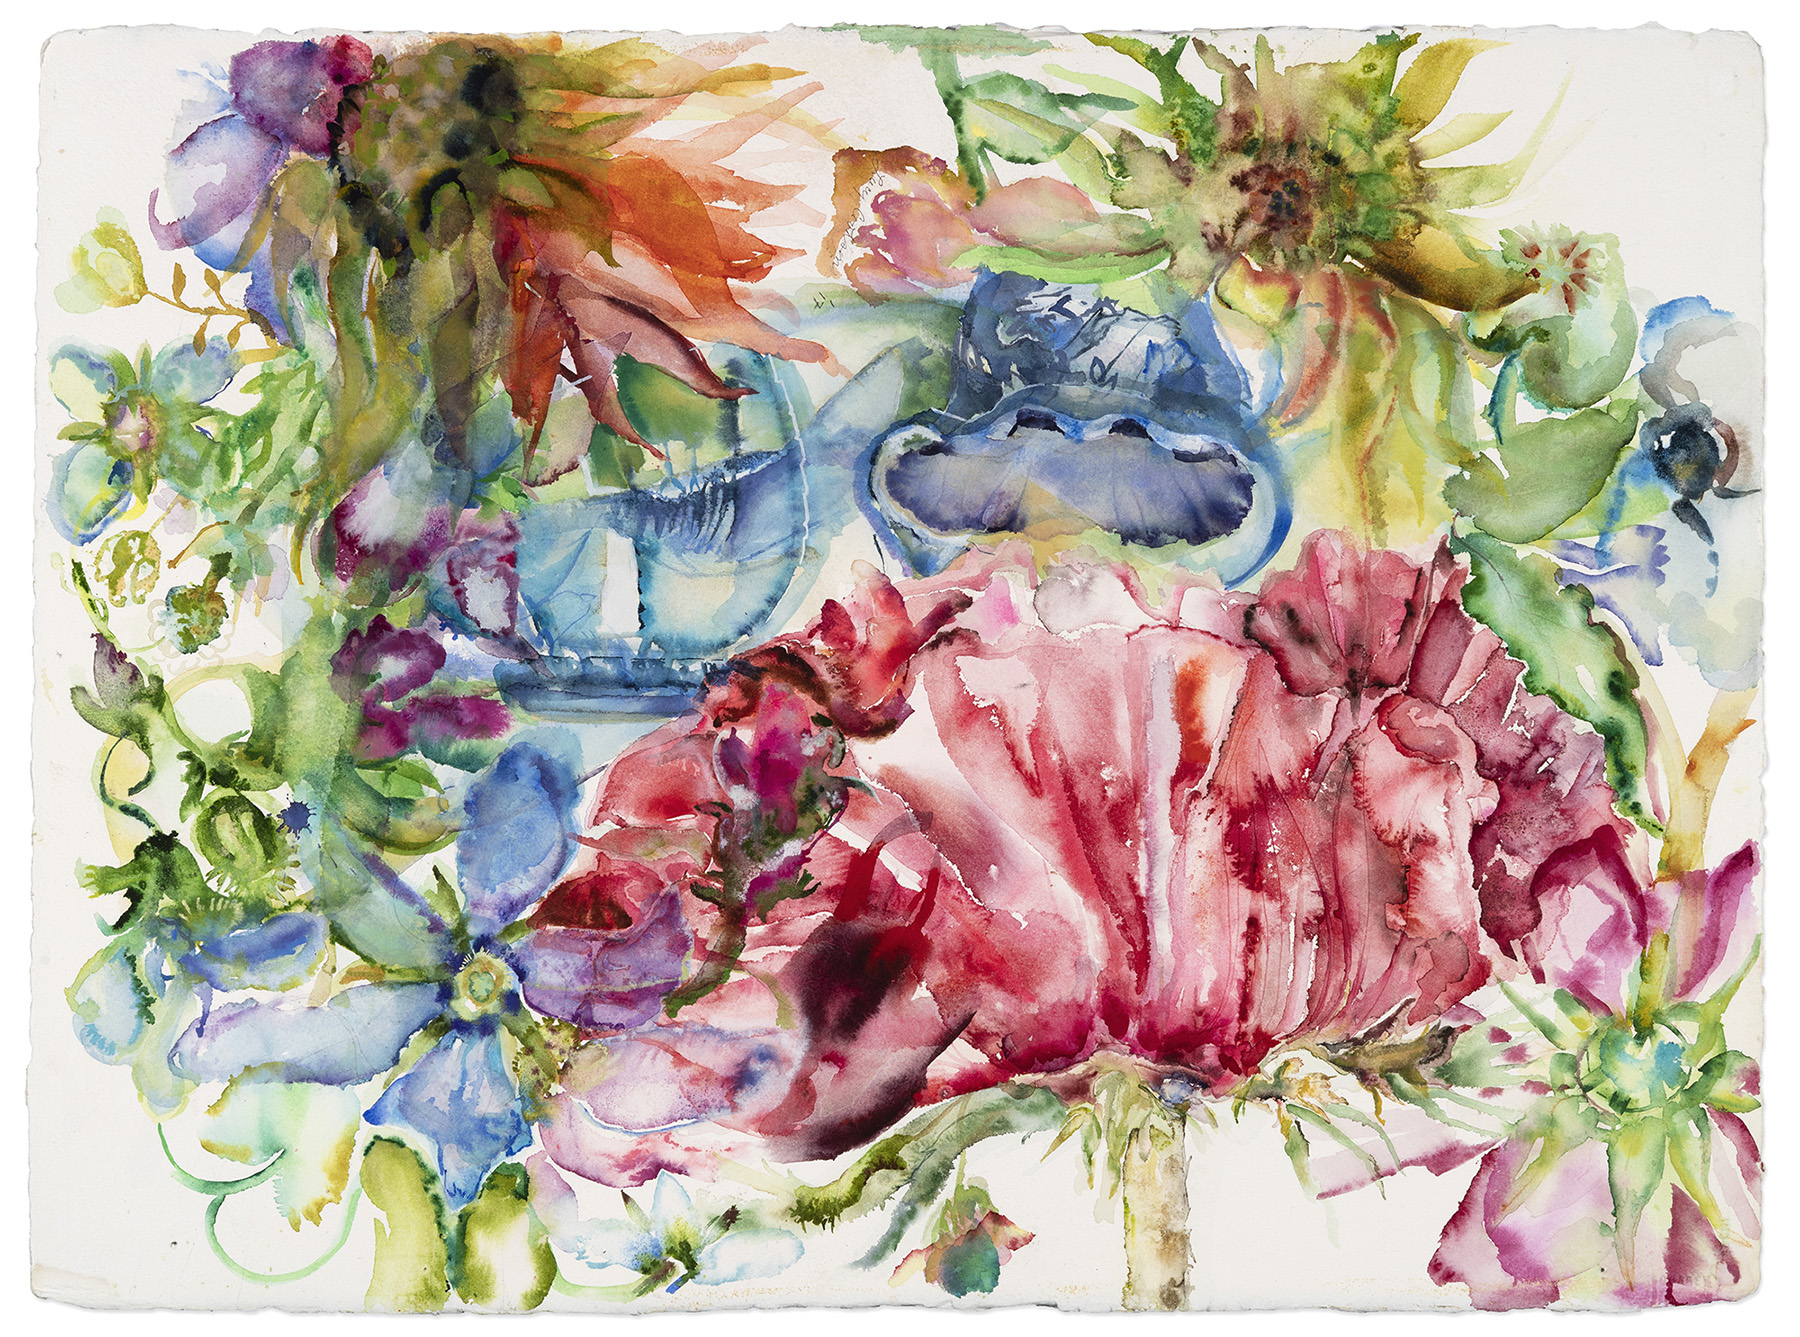 Michelle Ma Belle, 2017, Watercolor on paper, 22 x 30 in.